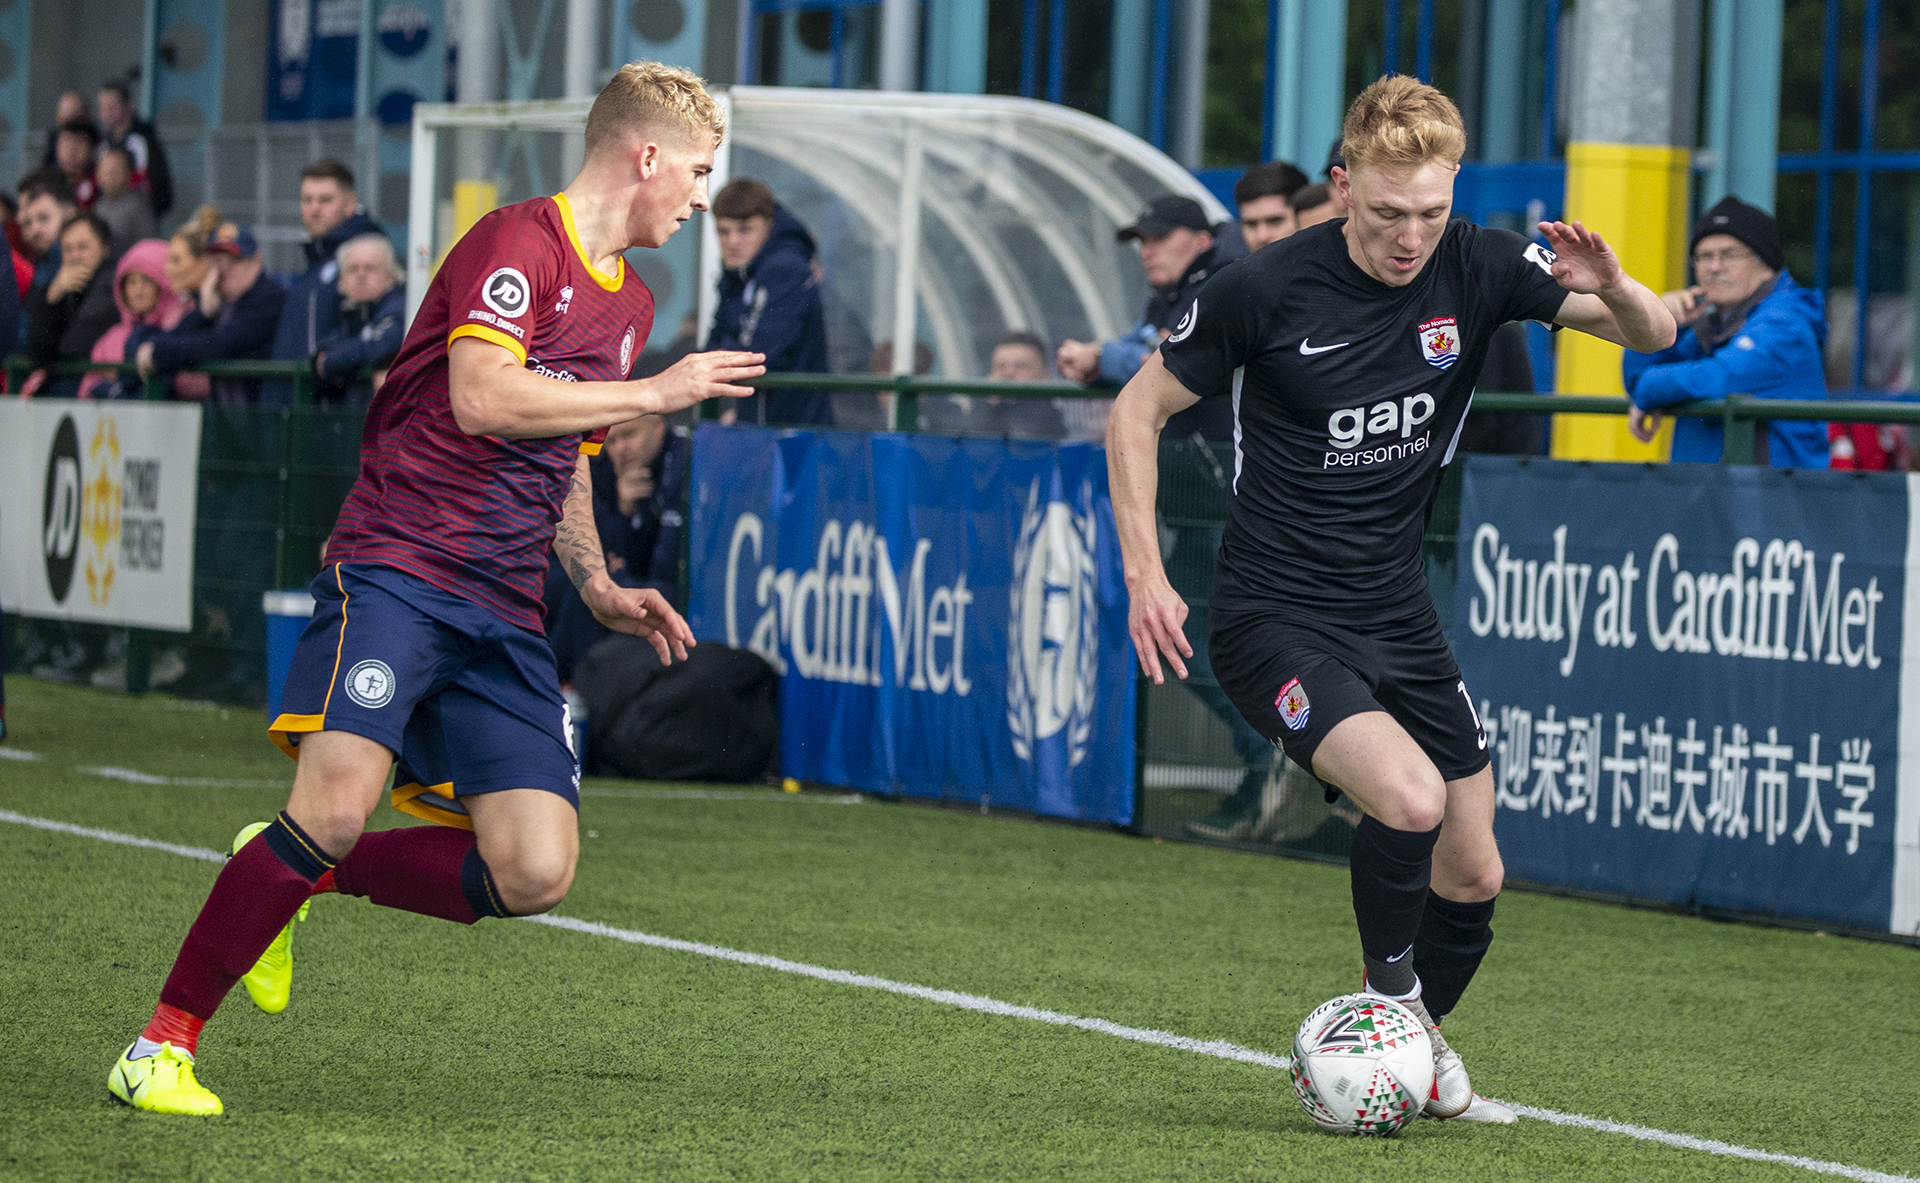 Declan Poole goes on the offensive in the first half | © NCM Media